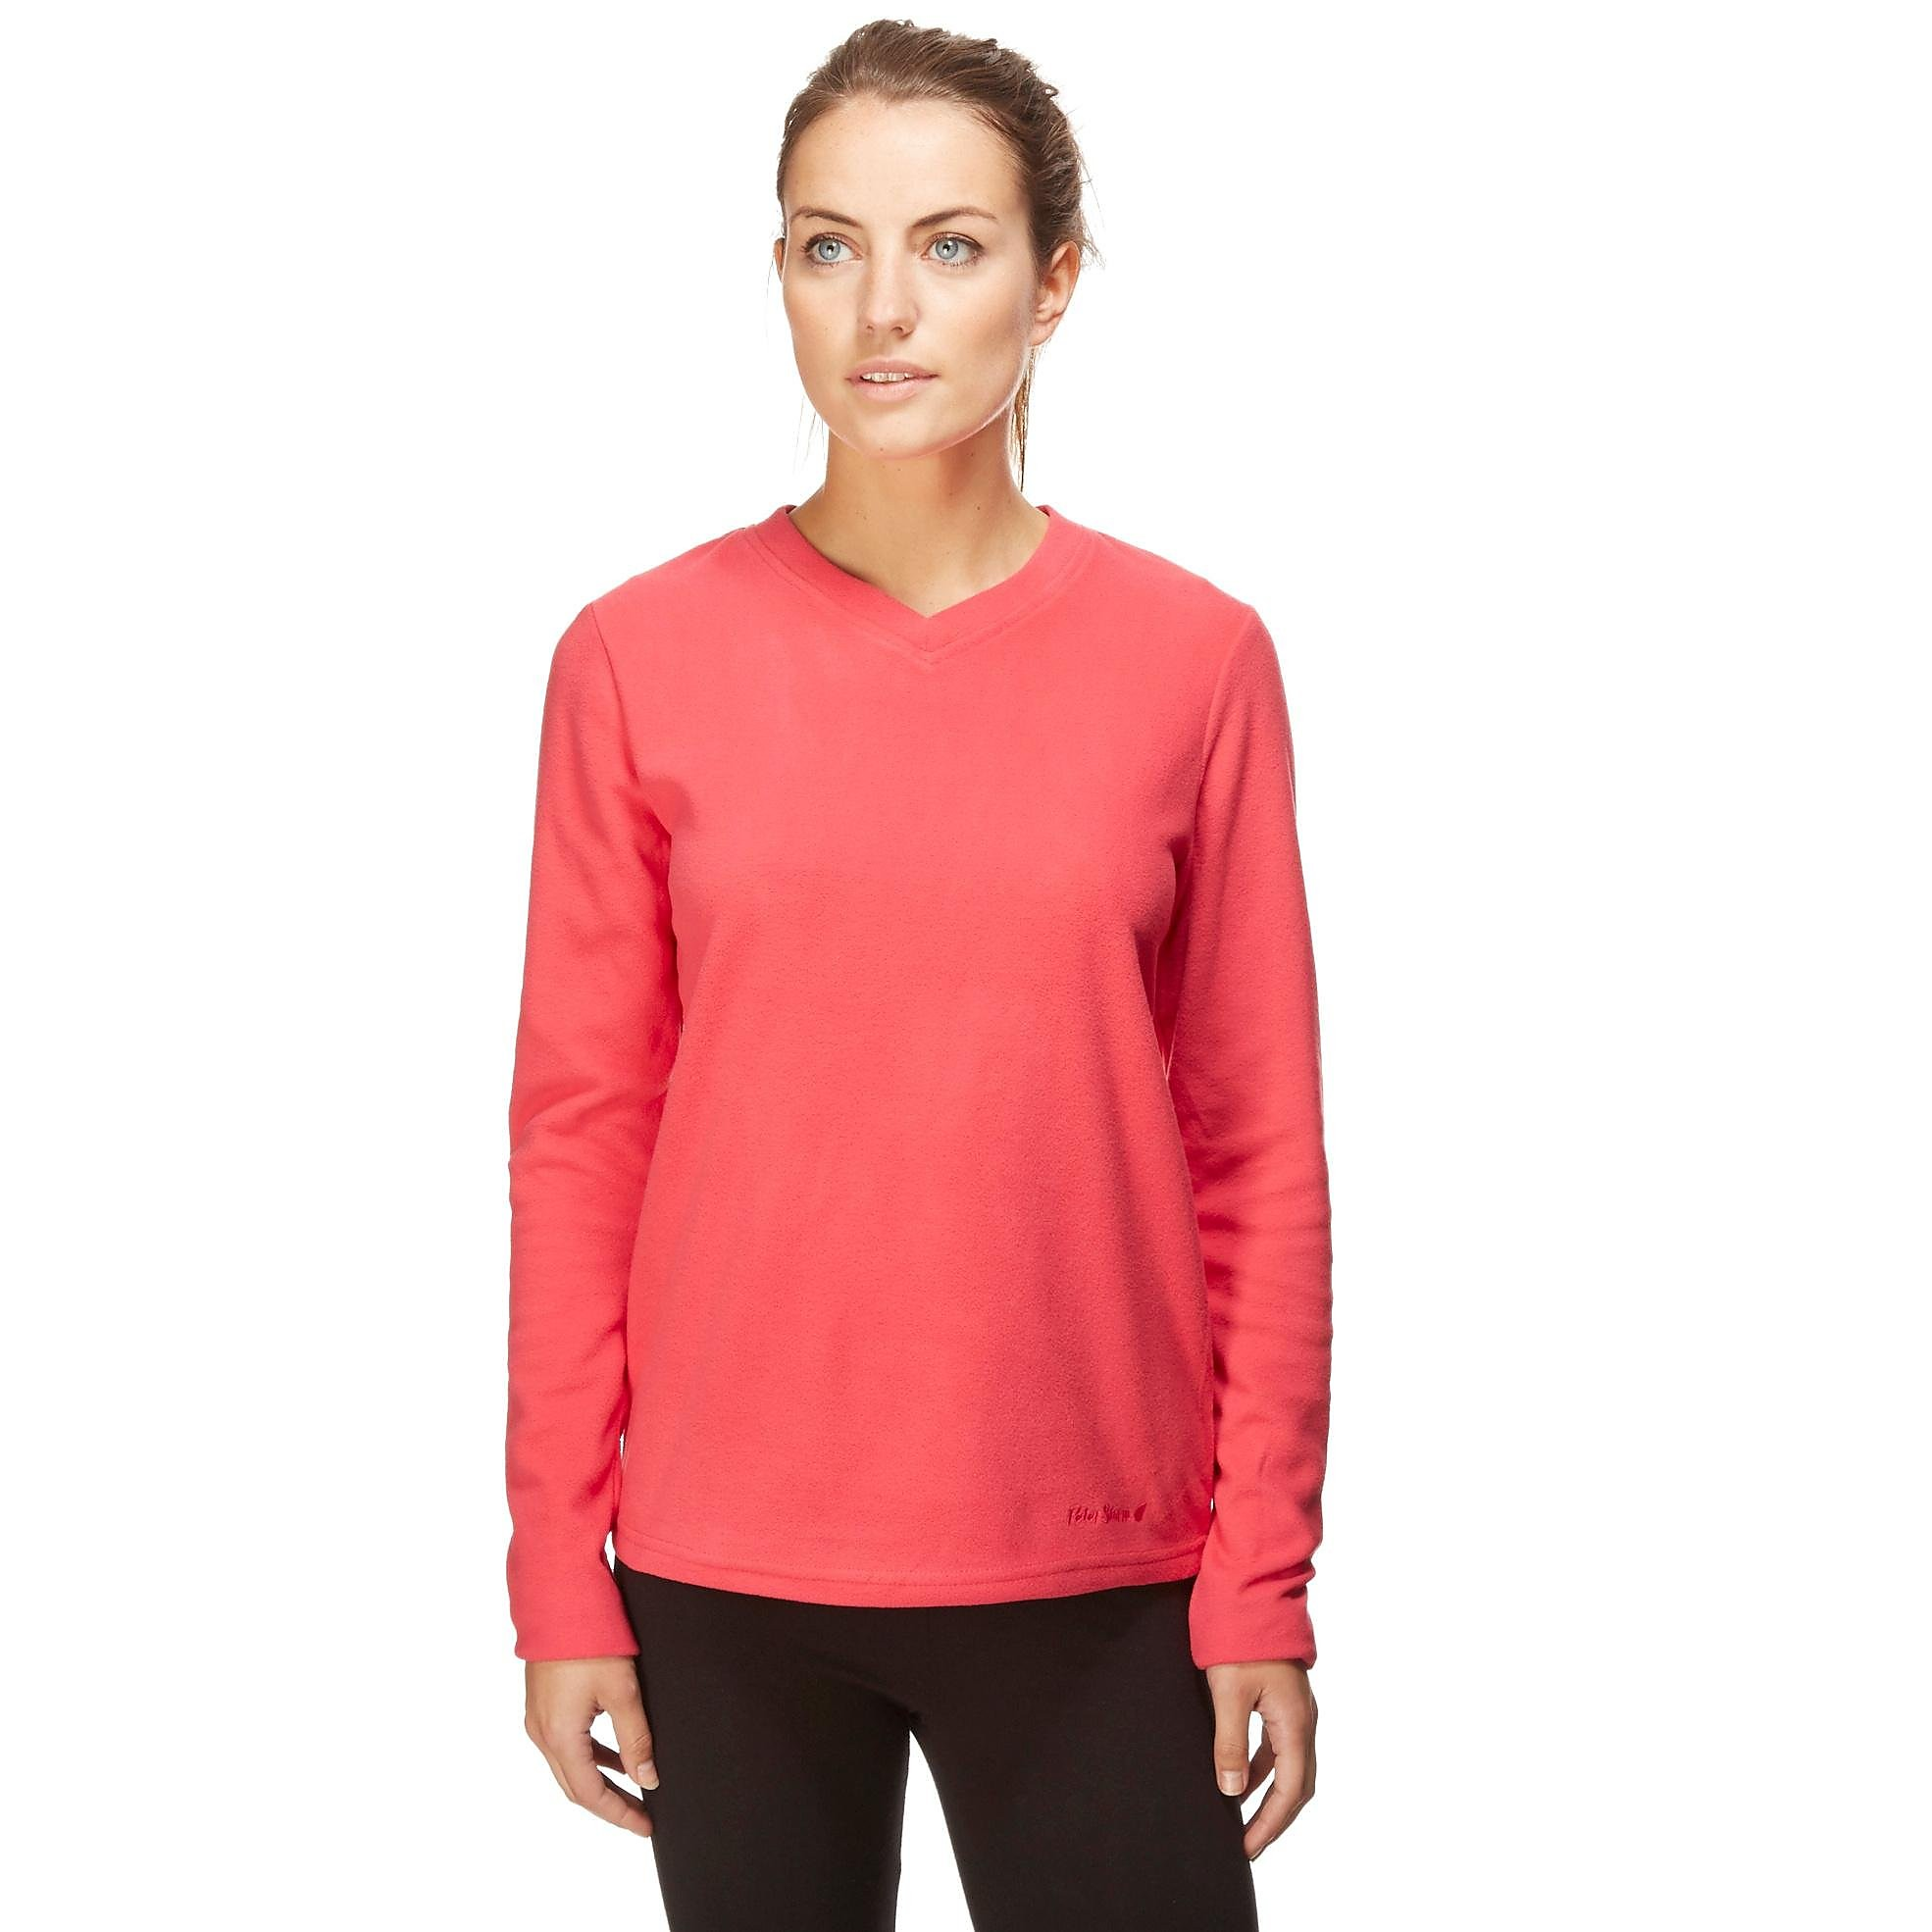 Peter Storm Grasmere V Neck Women's Fleece